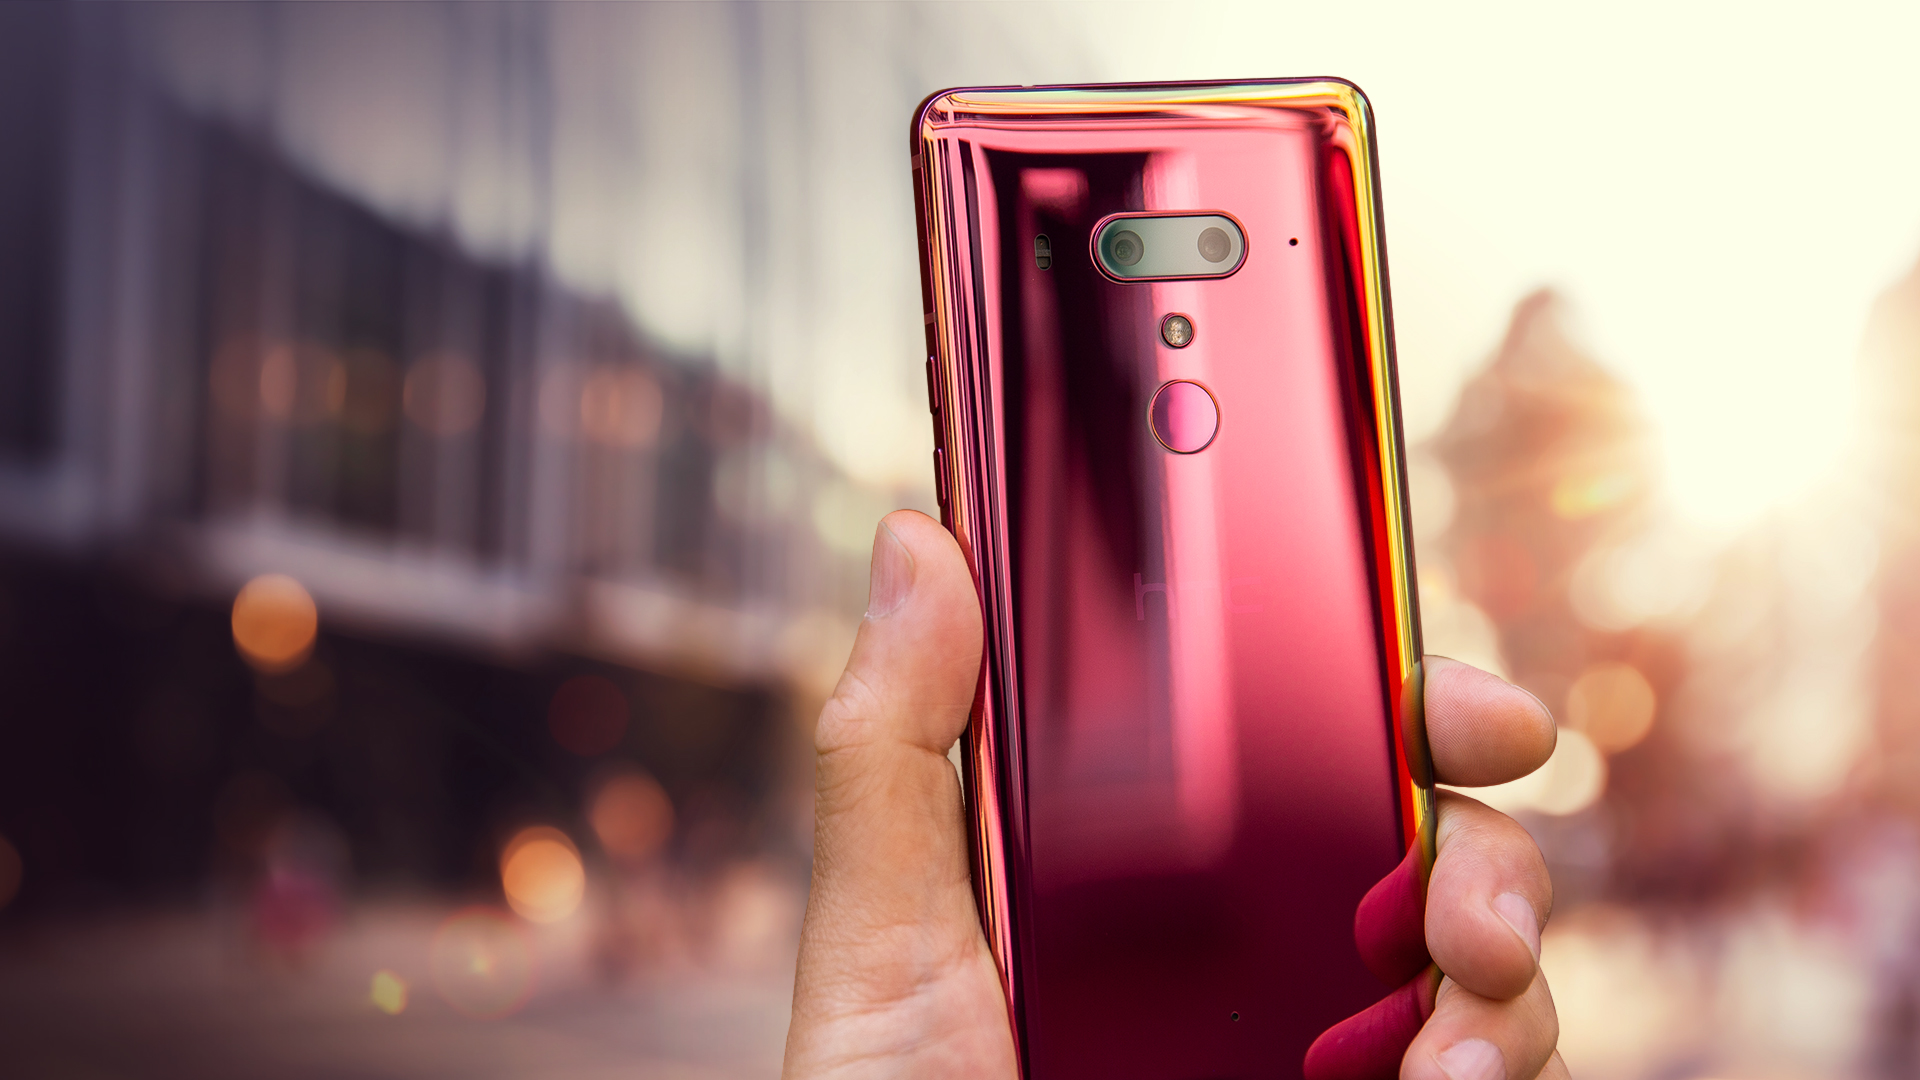 Htc U12 Plus Wallpapers Download All Of Them Here: HTC Opens U.S. Pre-orders For The Flame Red U12+, Ships In